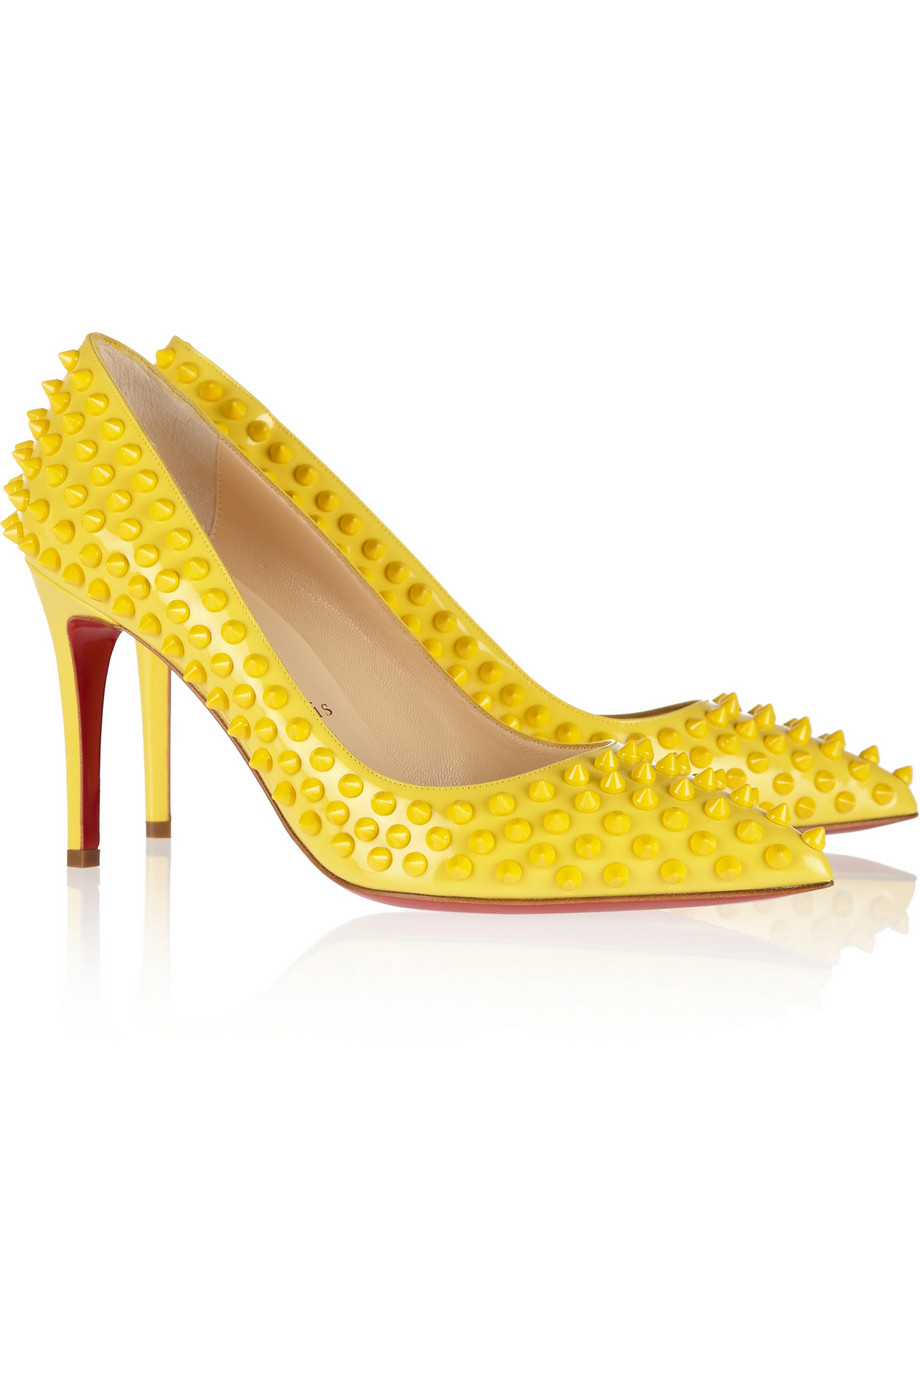 c2d5831a58ae Lyst - Christian Louboutin Pigalle Spikes 85 Patentleather Pumps in ...